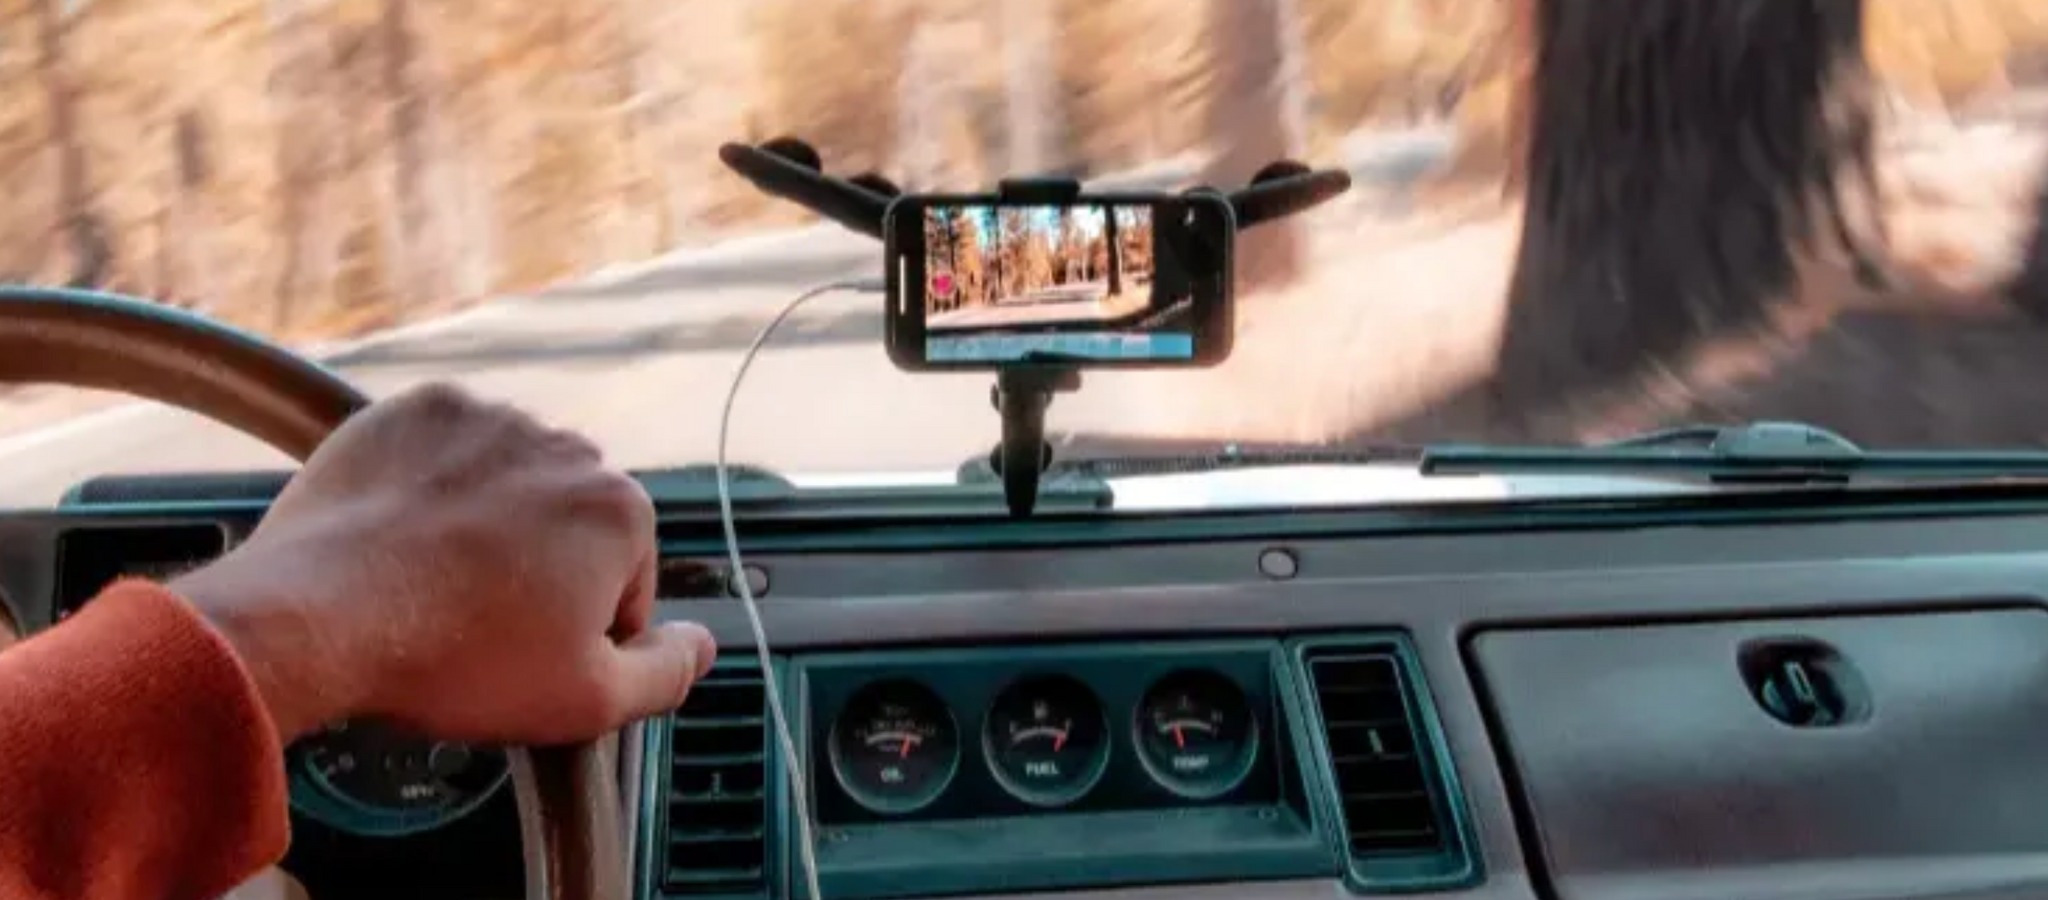 Safety First! 3 Genius Ways to Dashboard Mount Your Smartphone